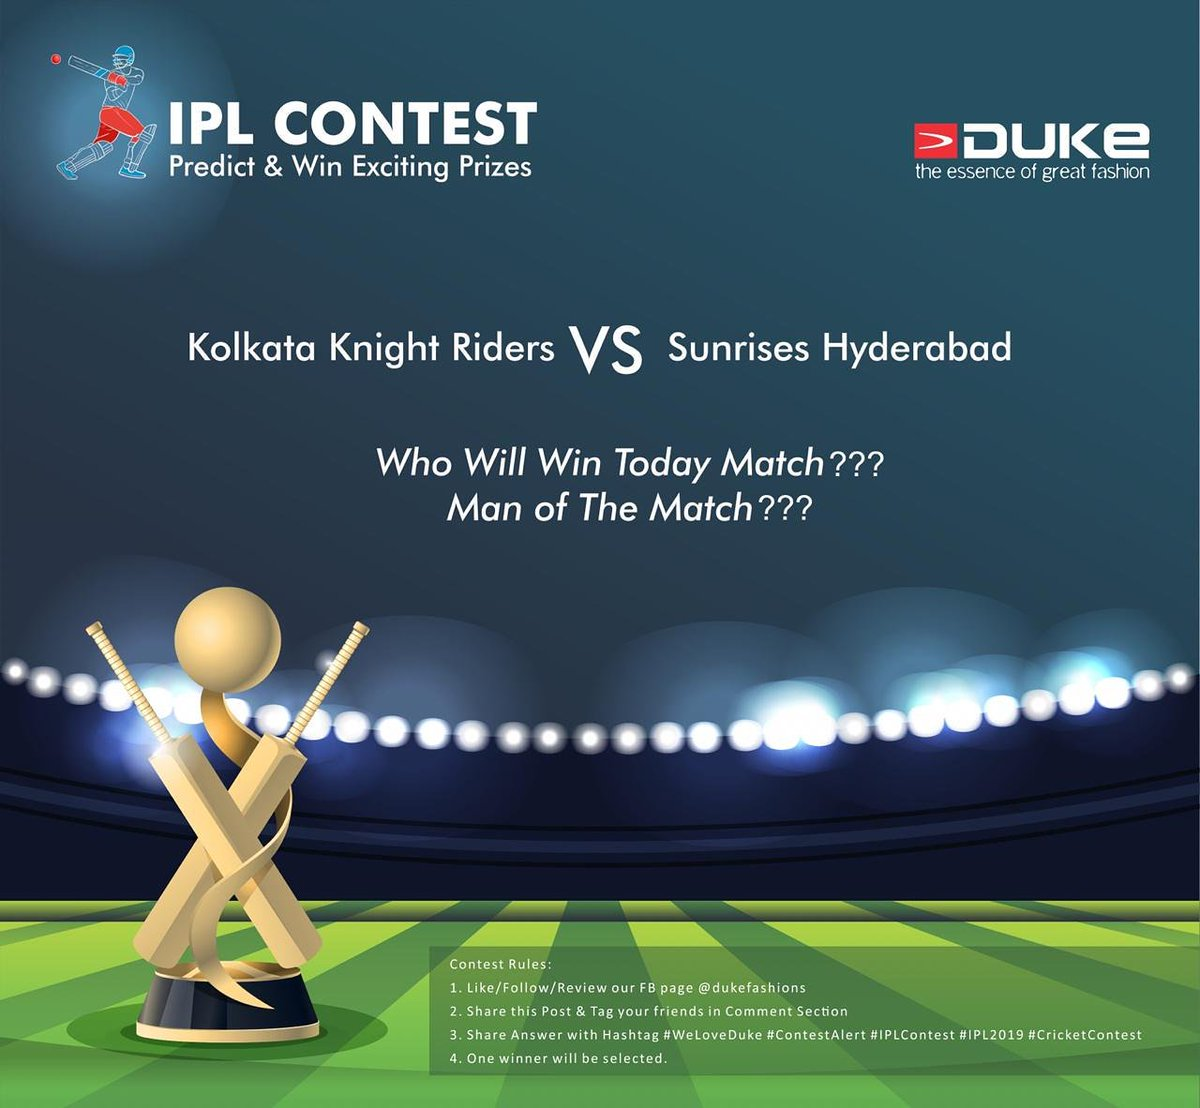 #ContestAlert: The IPL season has arrived &amp; we know hw much u are excited. Let's make it more interesting 4 u. Give ur prediction about the winner of IPL 2019 matches of Kolkata Knight Riders  vs Sunrisers Hyderabad &amp; if ur prediction goes right, u ill be awarded a special gift <br>http://pic.twitter.com/bWHZVxIgOE